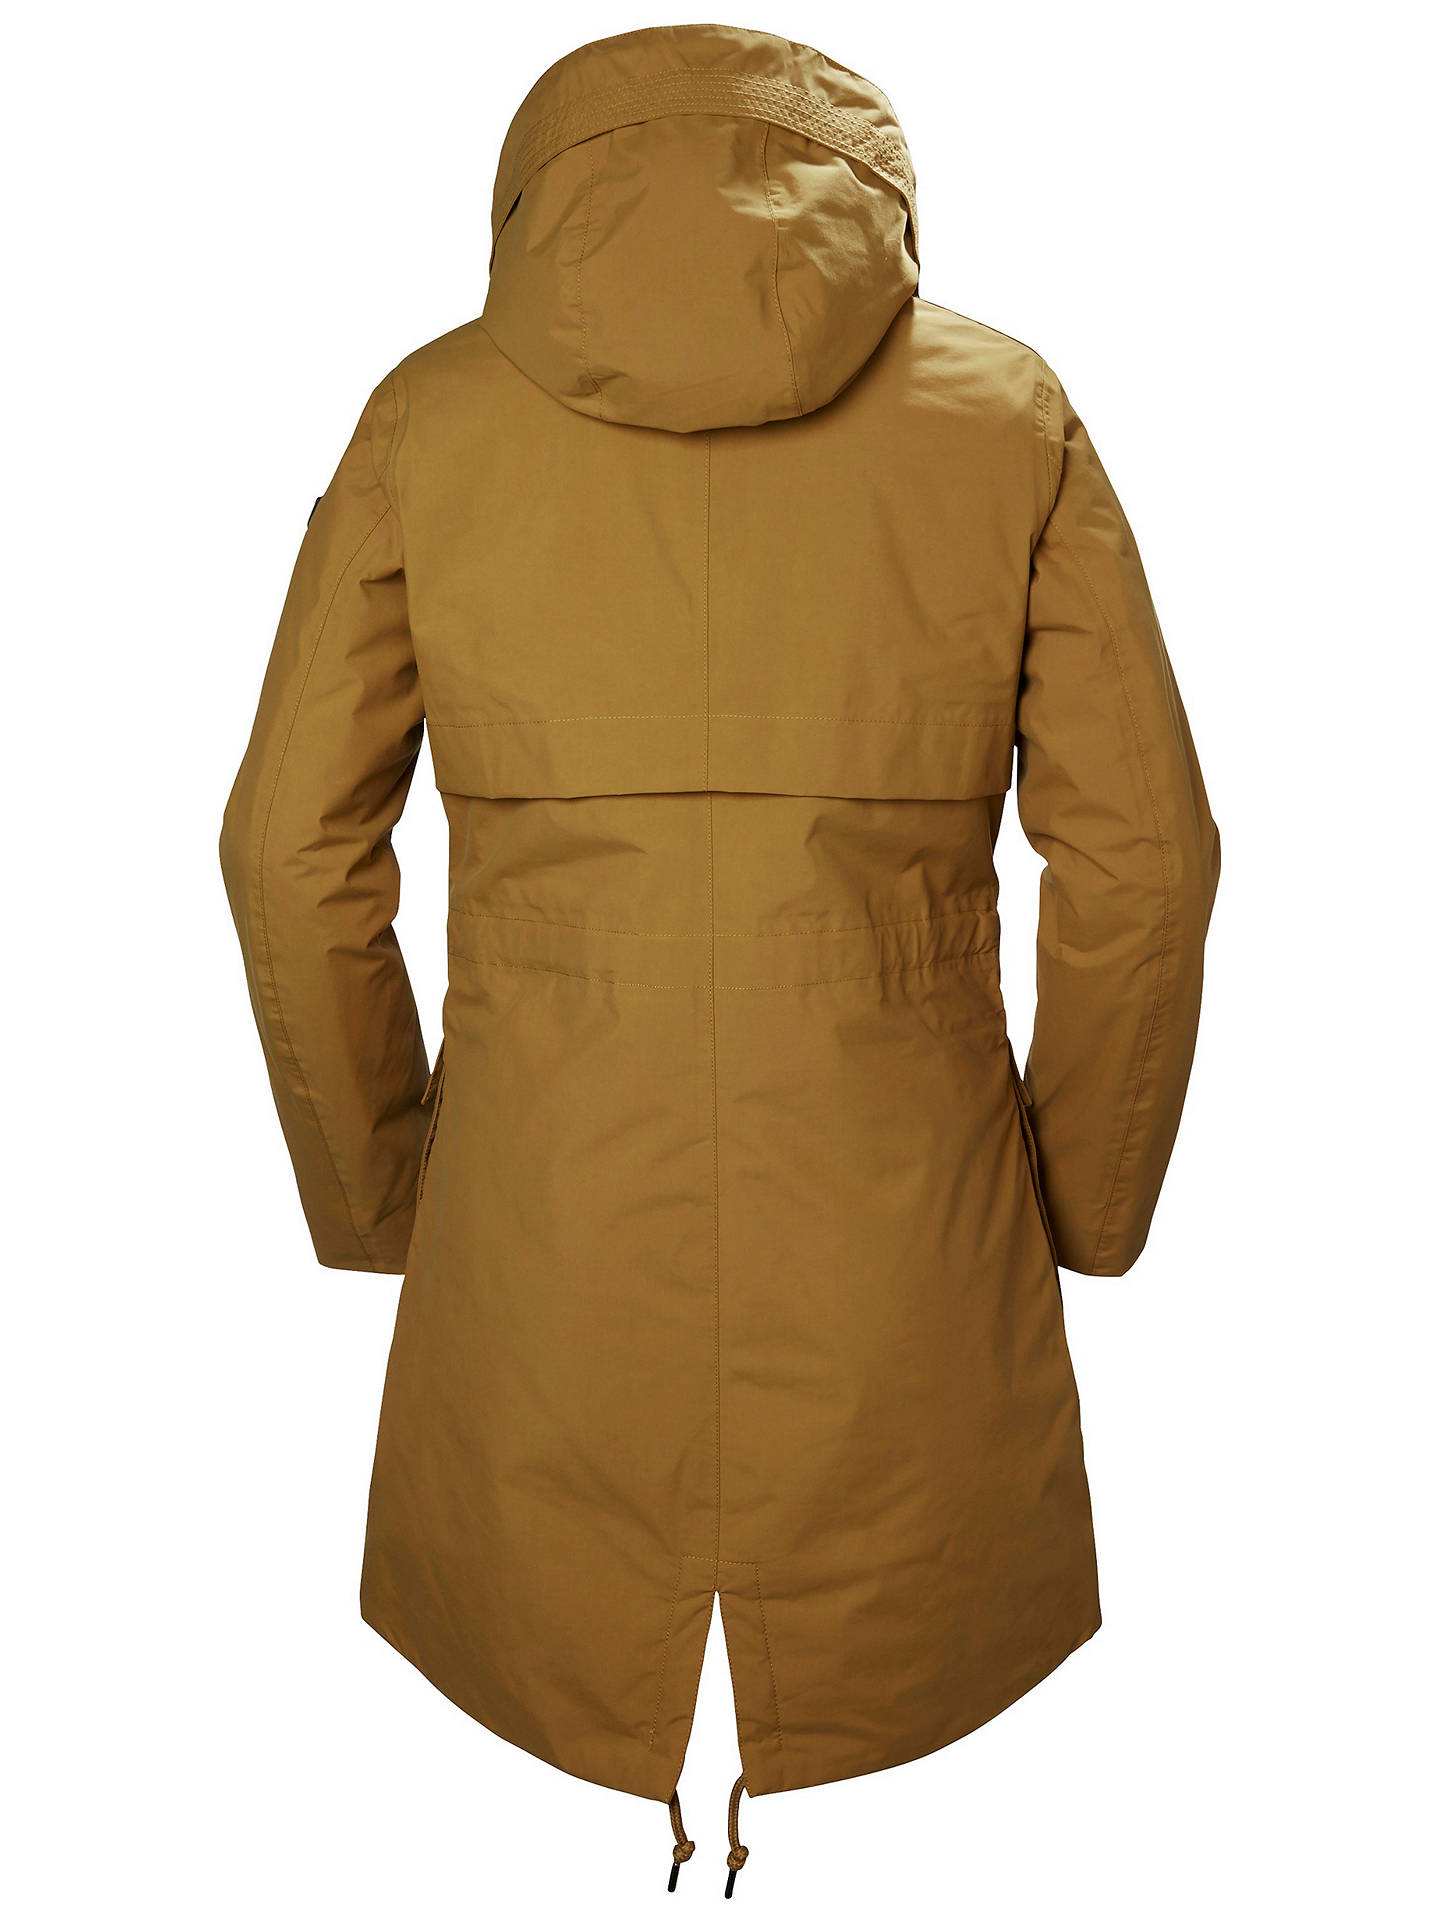 ... BuyHelly Hansen Boyne Waterproof Women s Parka Jacket 0aff823969